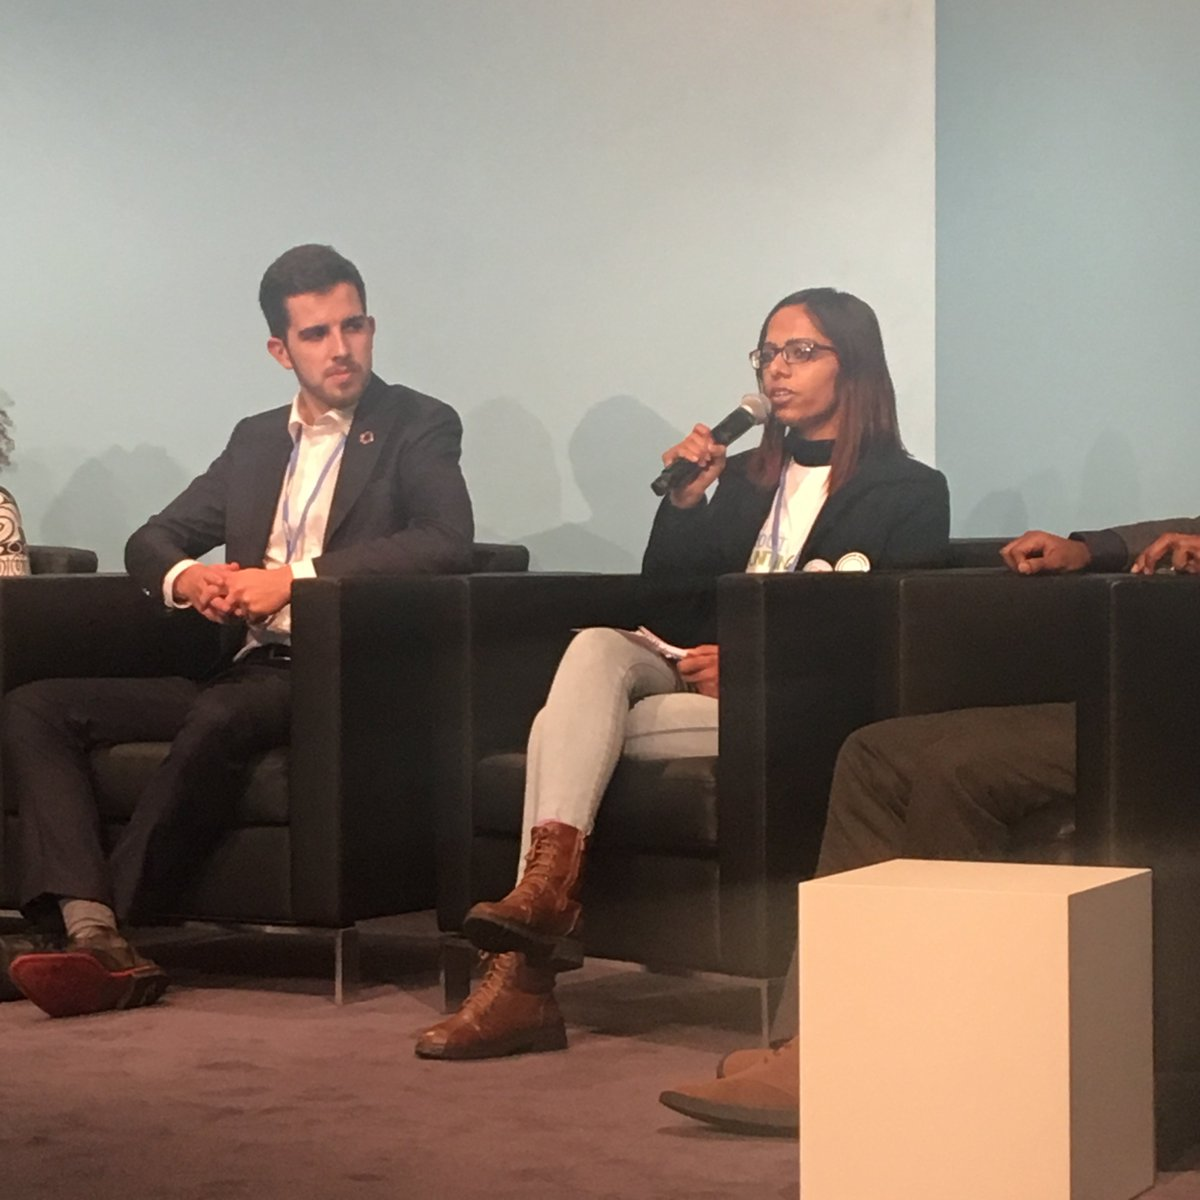 .@slhufa Pramyisha, global south scholar attended the Youth Ag Summit 2017 in Brussels this year with young innovators from all over the world sharing their stories and techniques to fight climate change #COP23climates #COP23 @CliMates @IYCM @ACEducation #YouthDay pic.twitter.com/d103BtNgjV